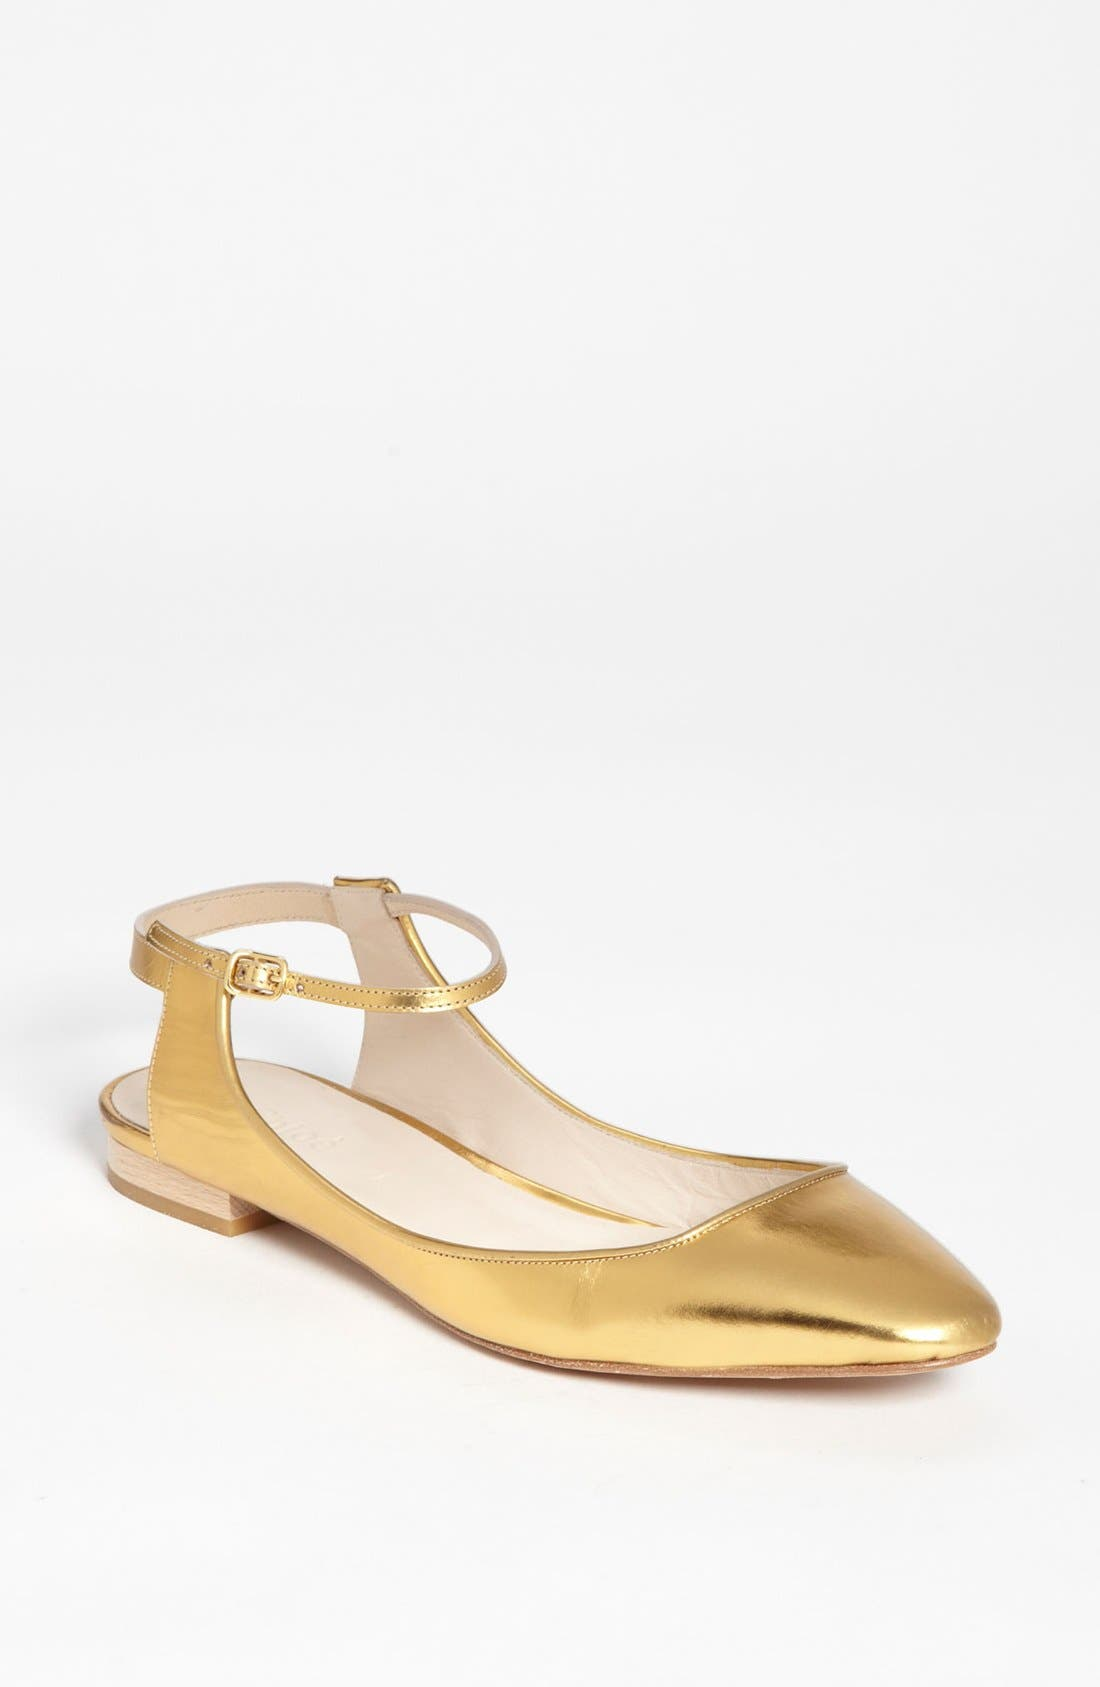 Main Image - Chloé Ankle Strap Flat